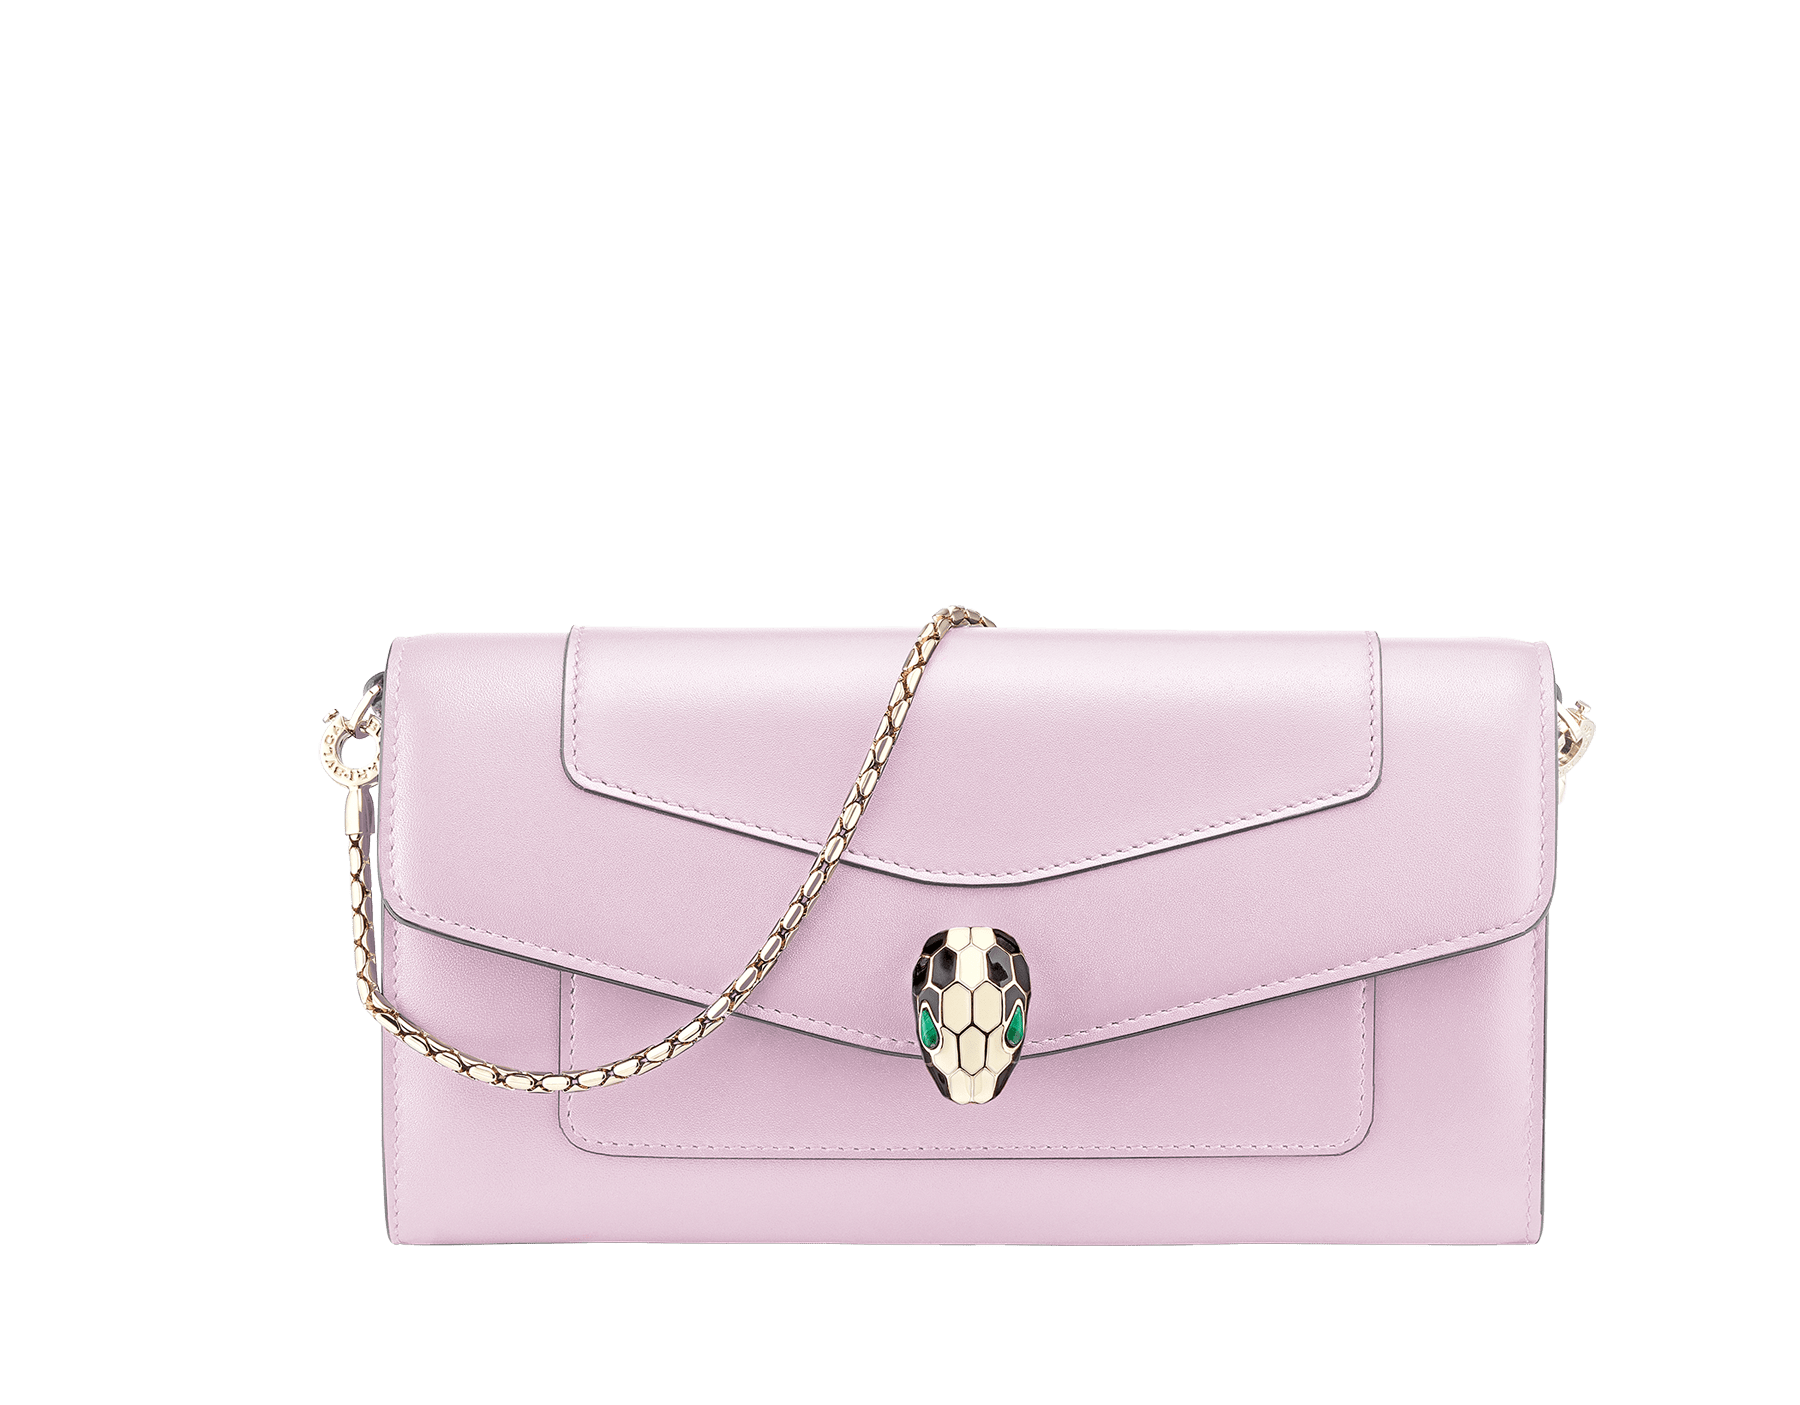 Serpenti Forever wallet pouch in carmine jasper and flash amethyst calf leather. Iconic snakehead stud closure in black and white enamel with green malachite eyes. SEA-WLT-LONGCHAIN-CL image 1